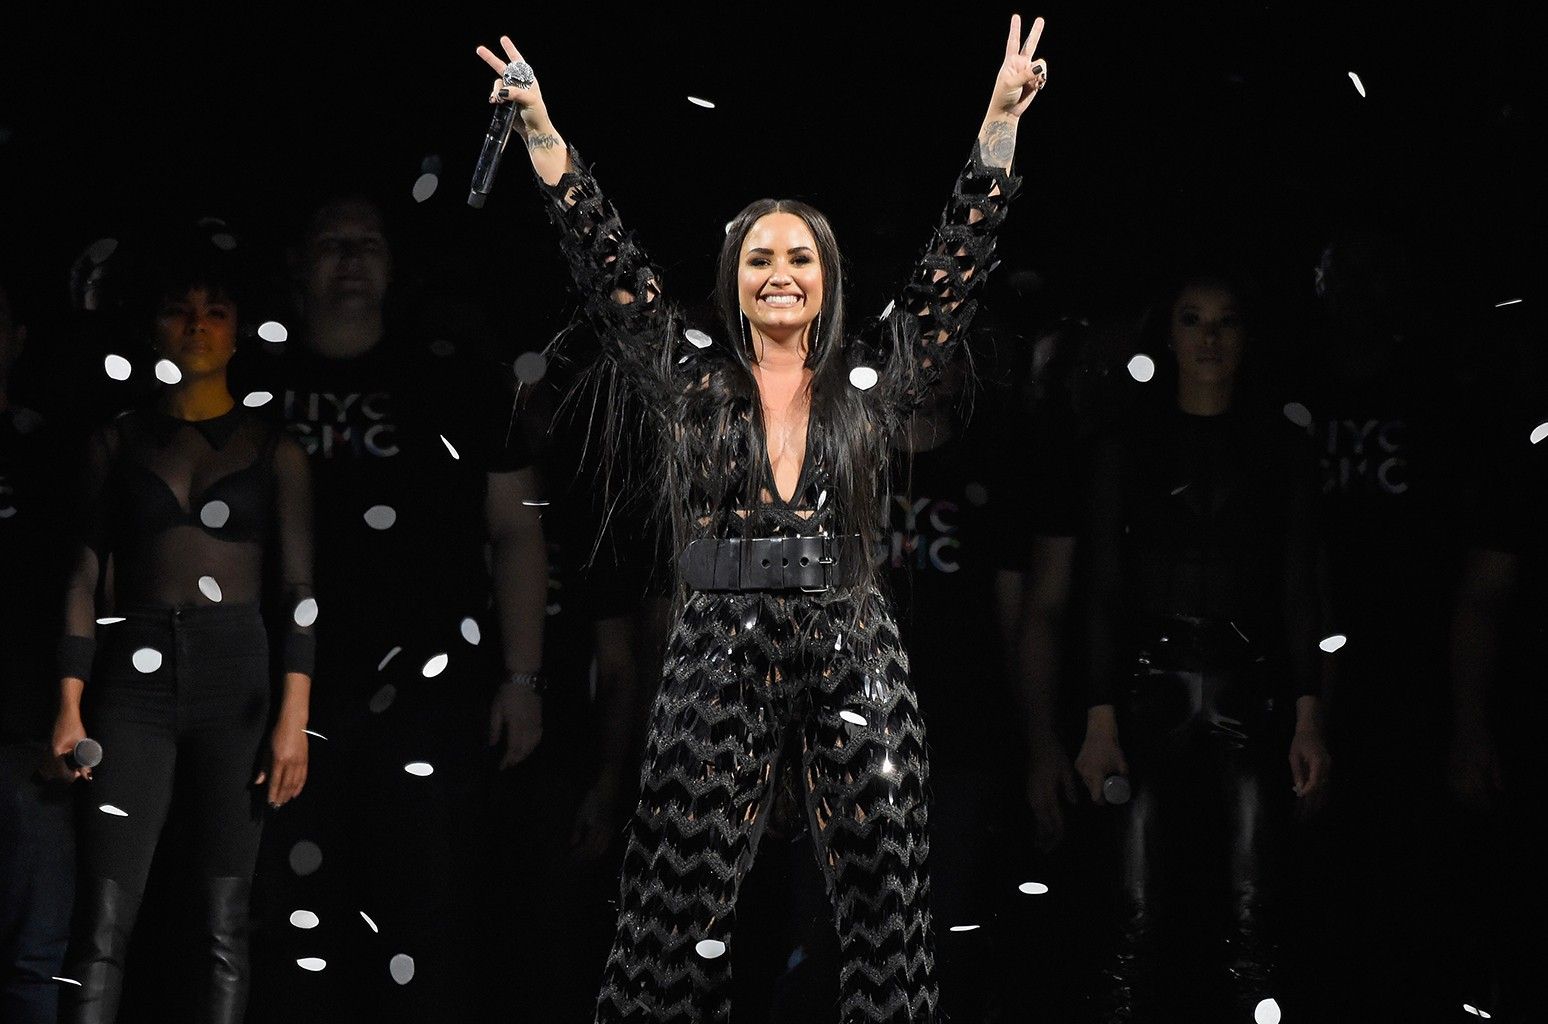 Demi Lovato S Tell Me You Love Me World Tour Earns 20 Million In Opening Run Billboard Billboard